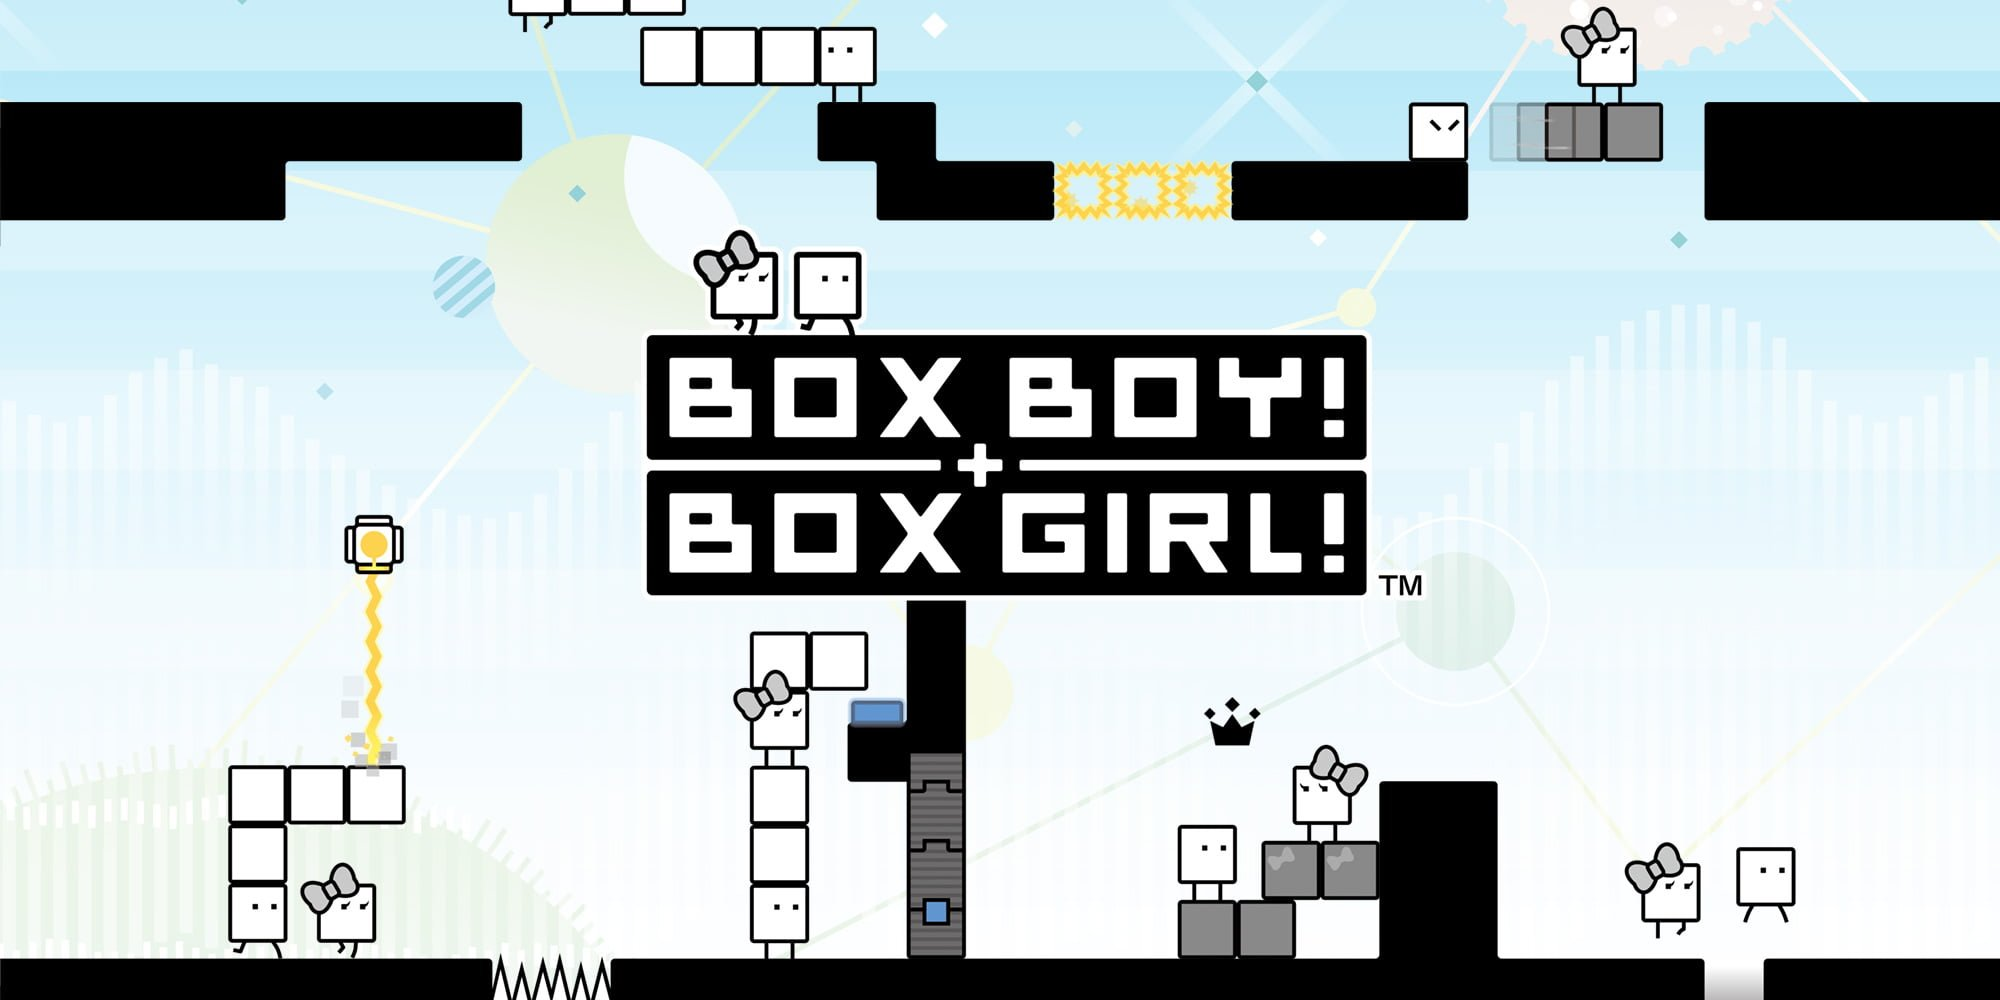 BOXBOY! + BOXGIRL! Full Version Free Download